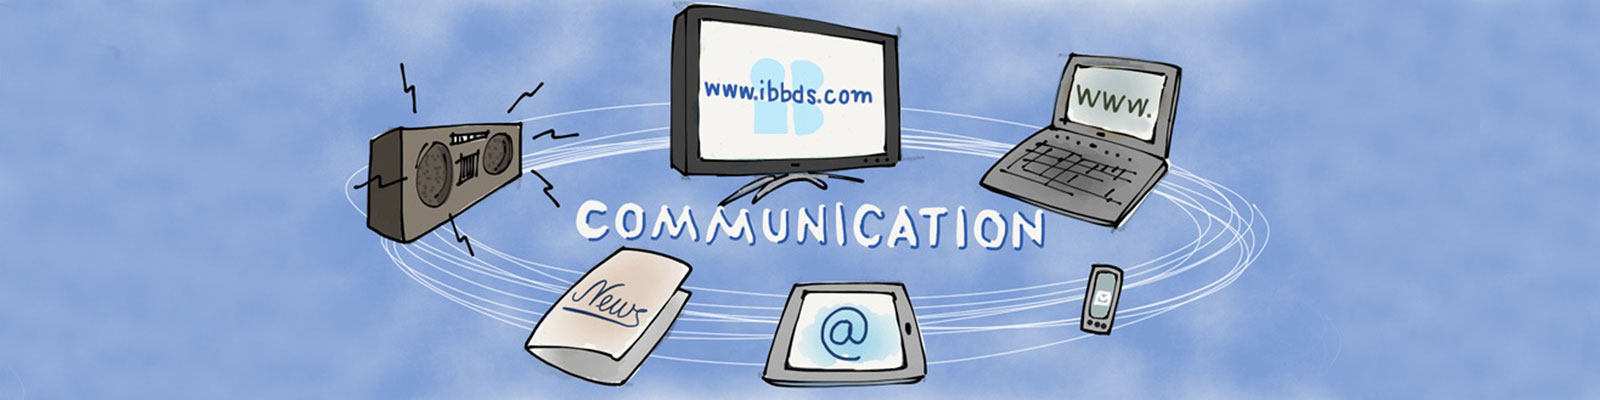 Communication Solutions by ibbds